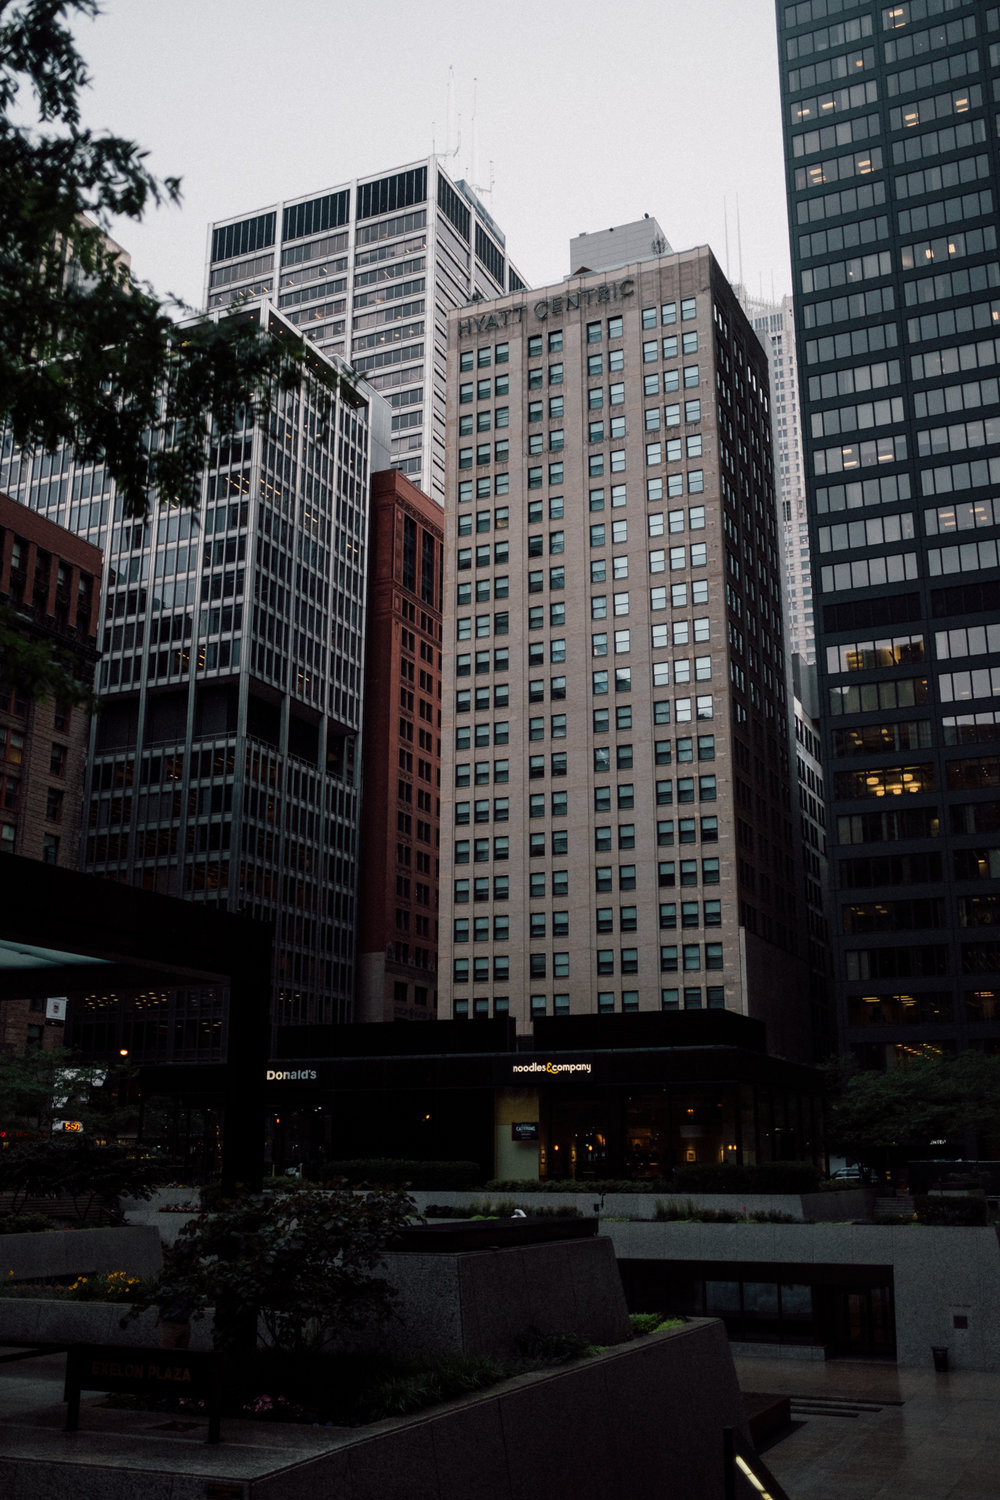 streeterville and chicago (8 of 46).jpg